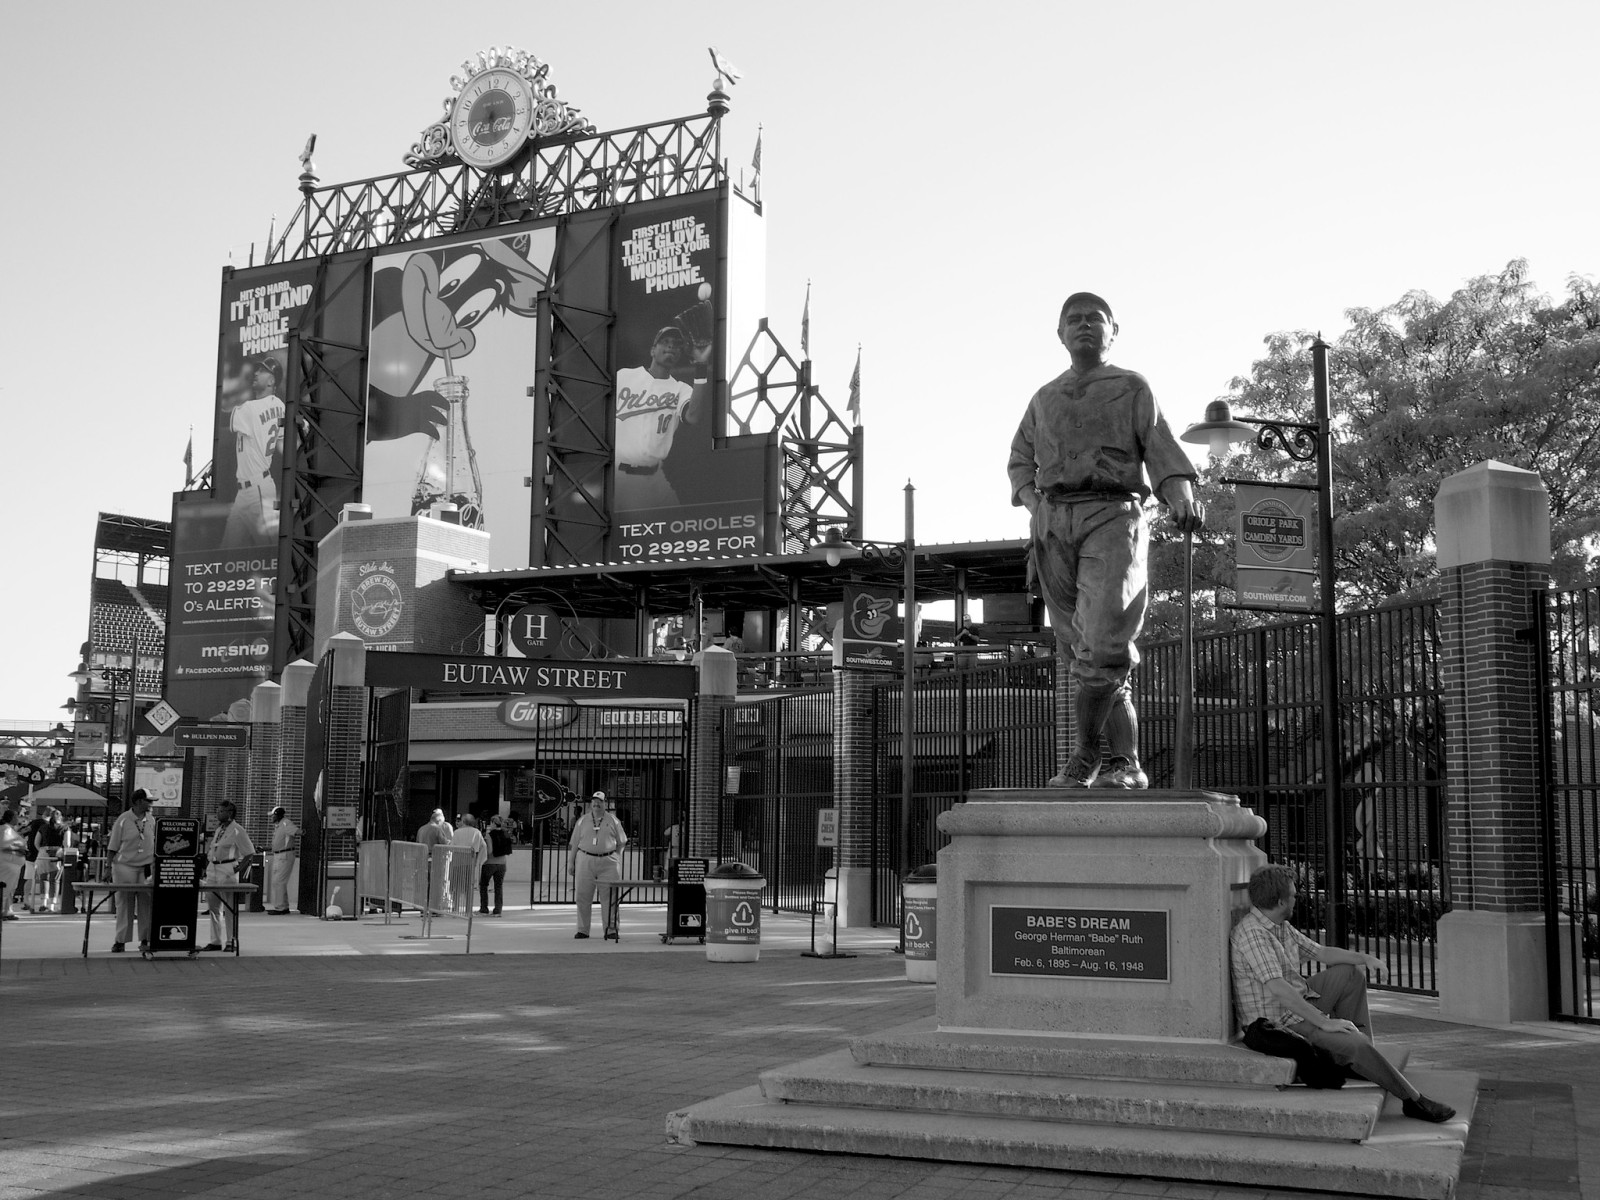 Statue of Babe Ruth